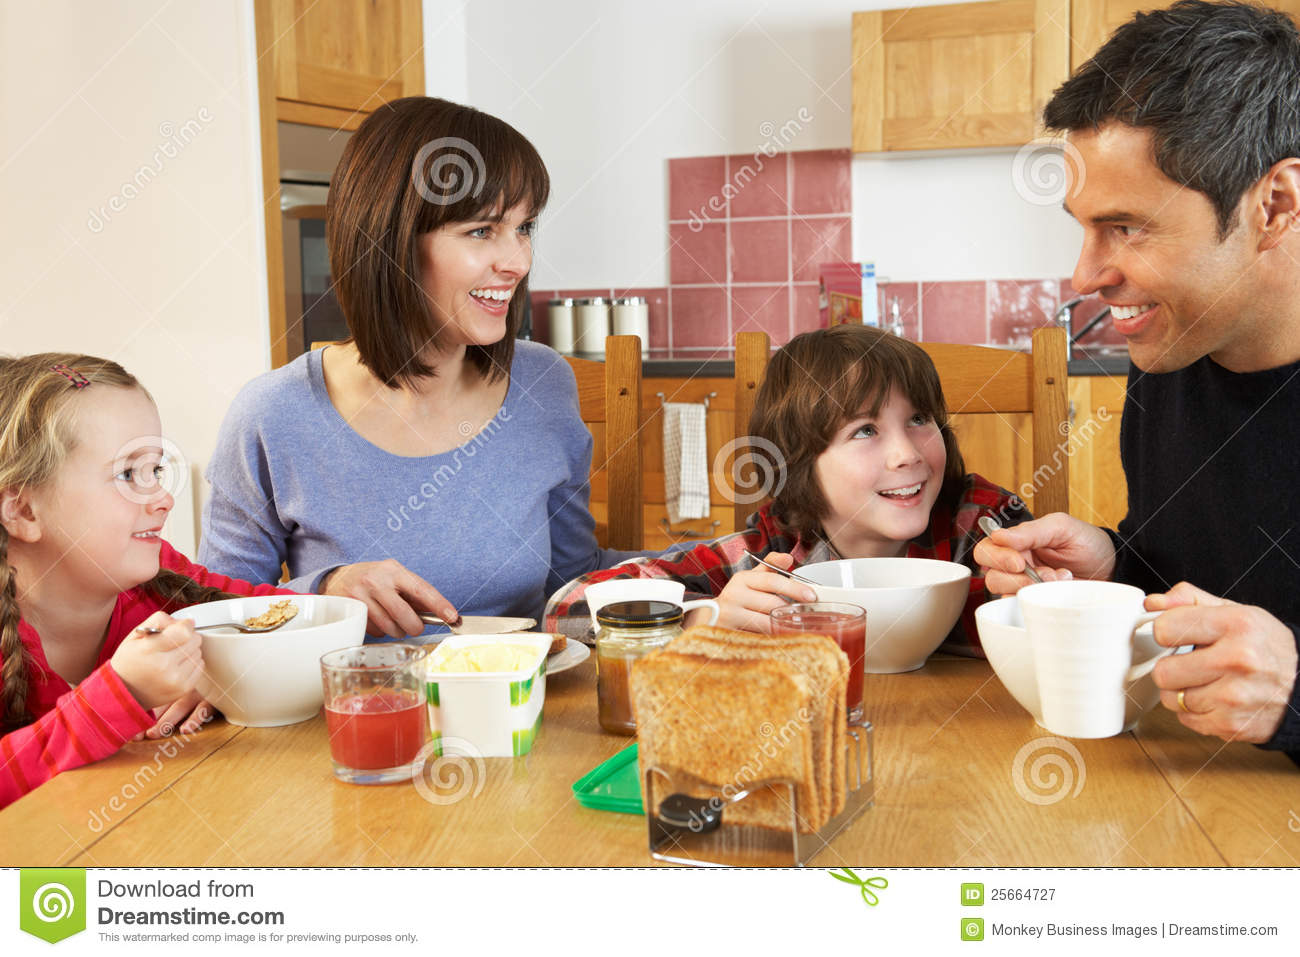 Family Eating Breakfast Together In Kitchen Stock Image ...